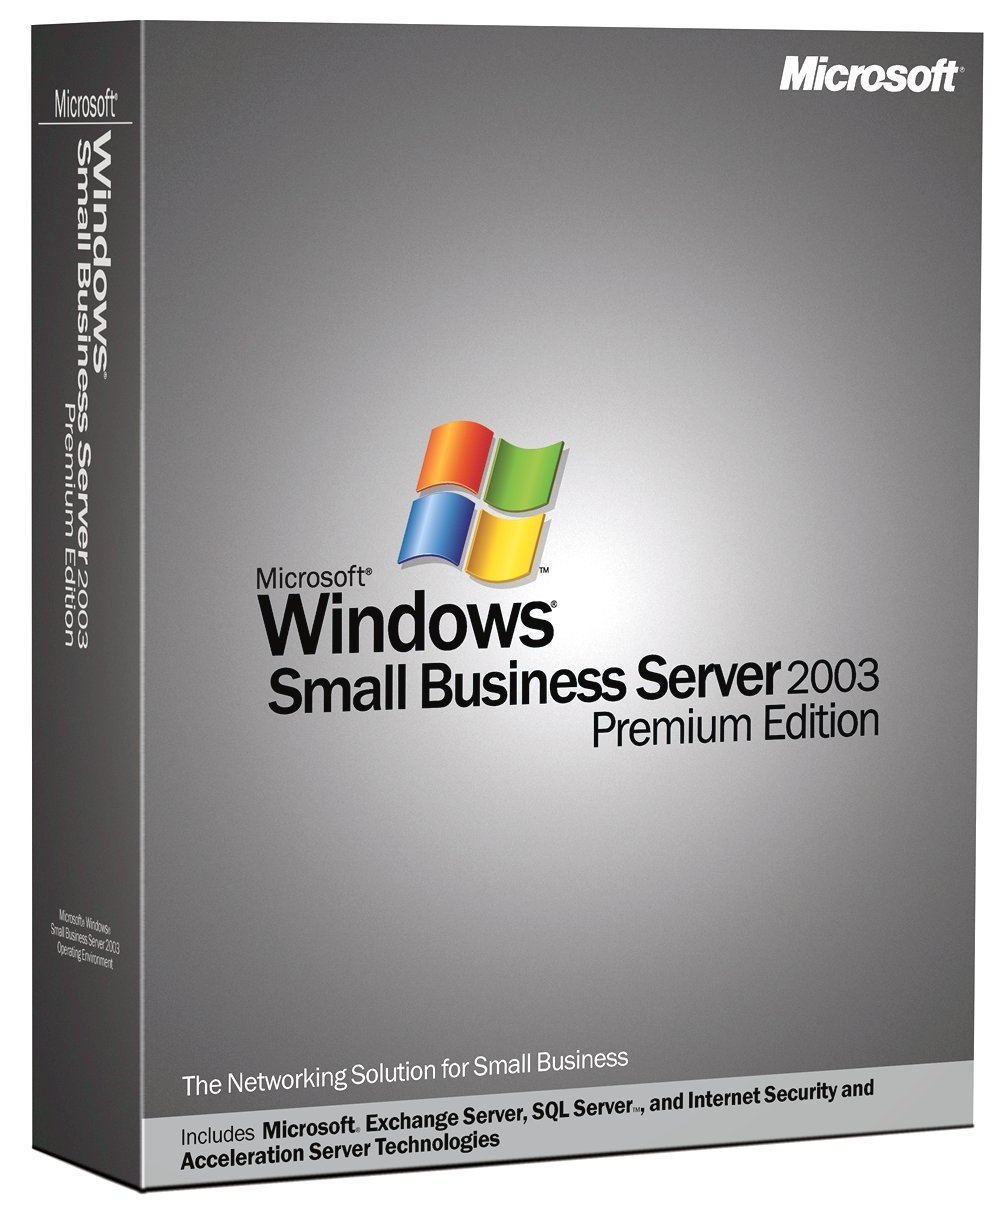 Windows Small Business Server 2003 Premium Edition Key